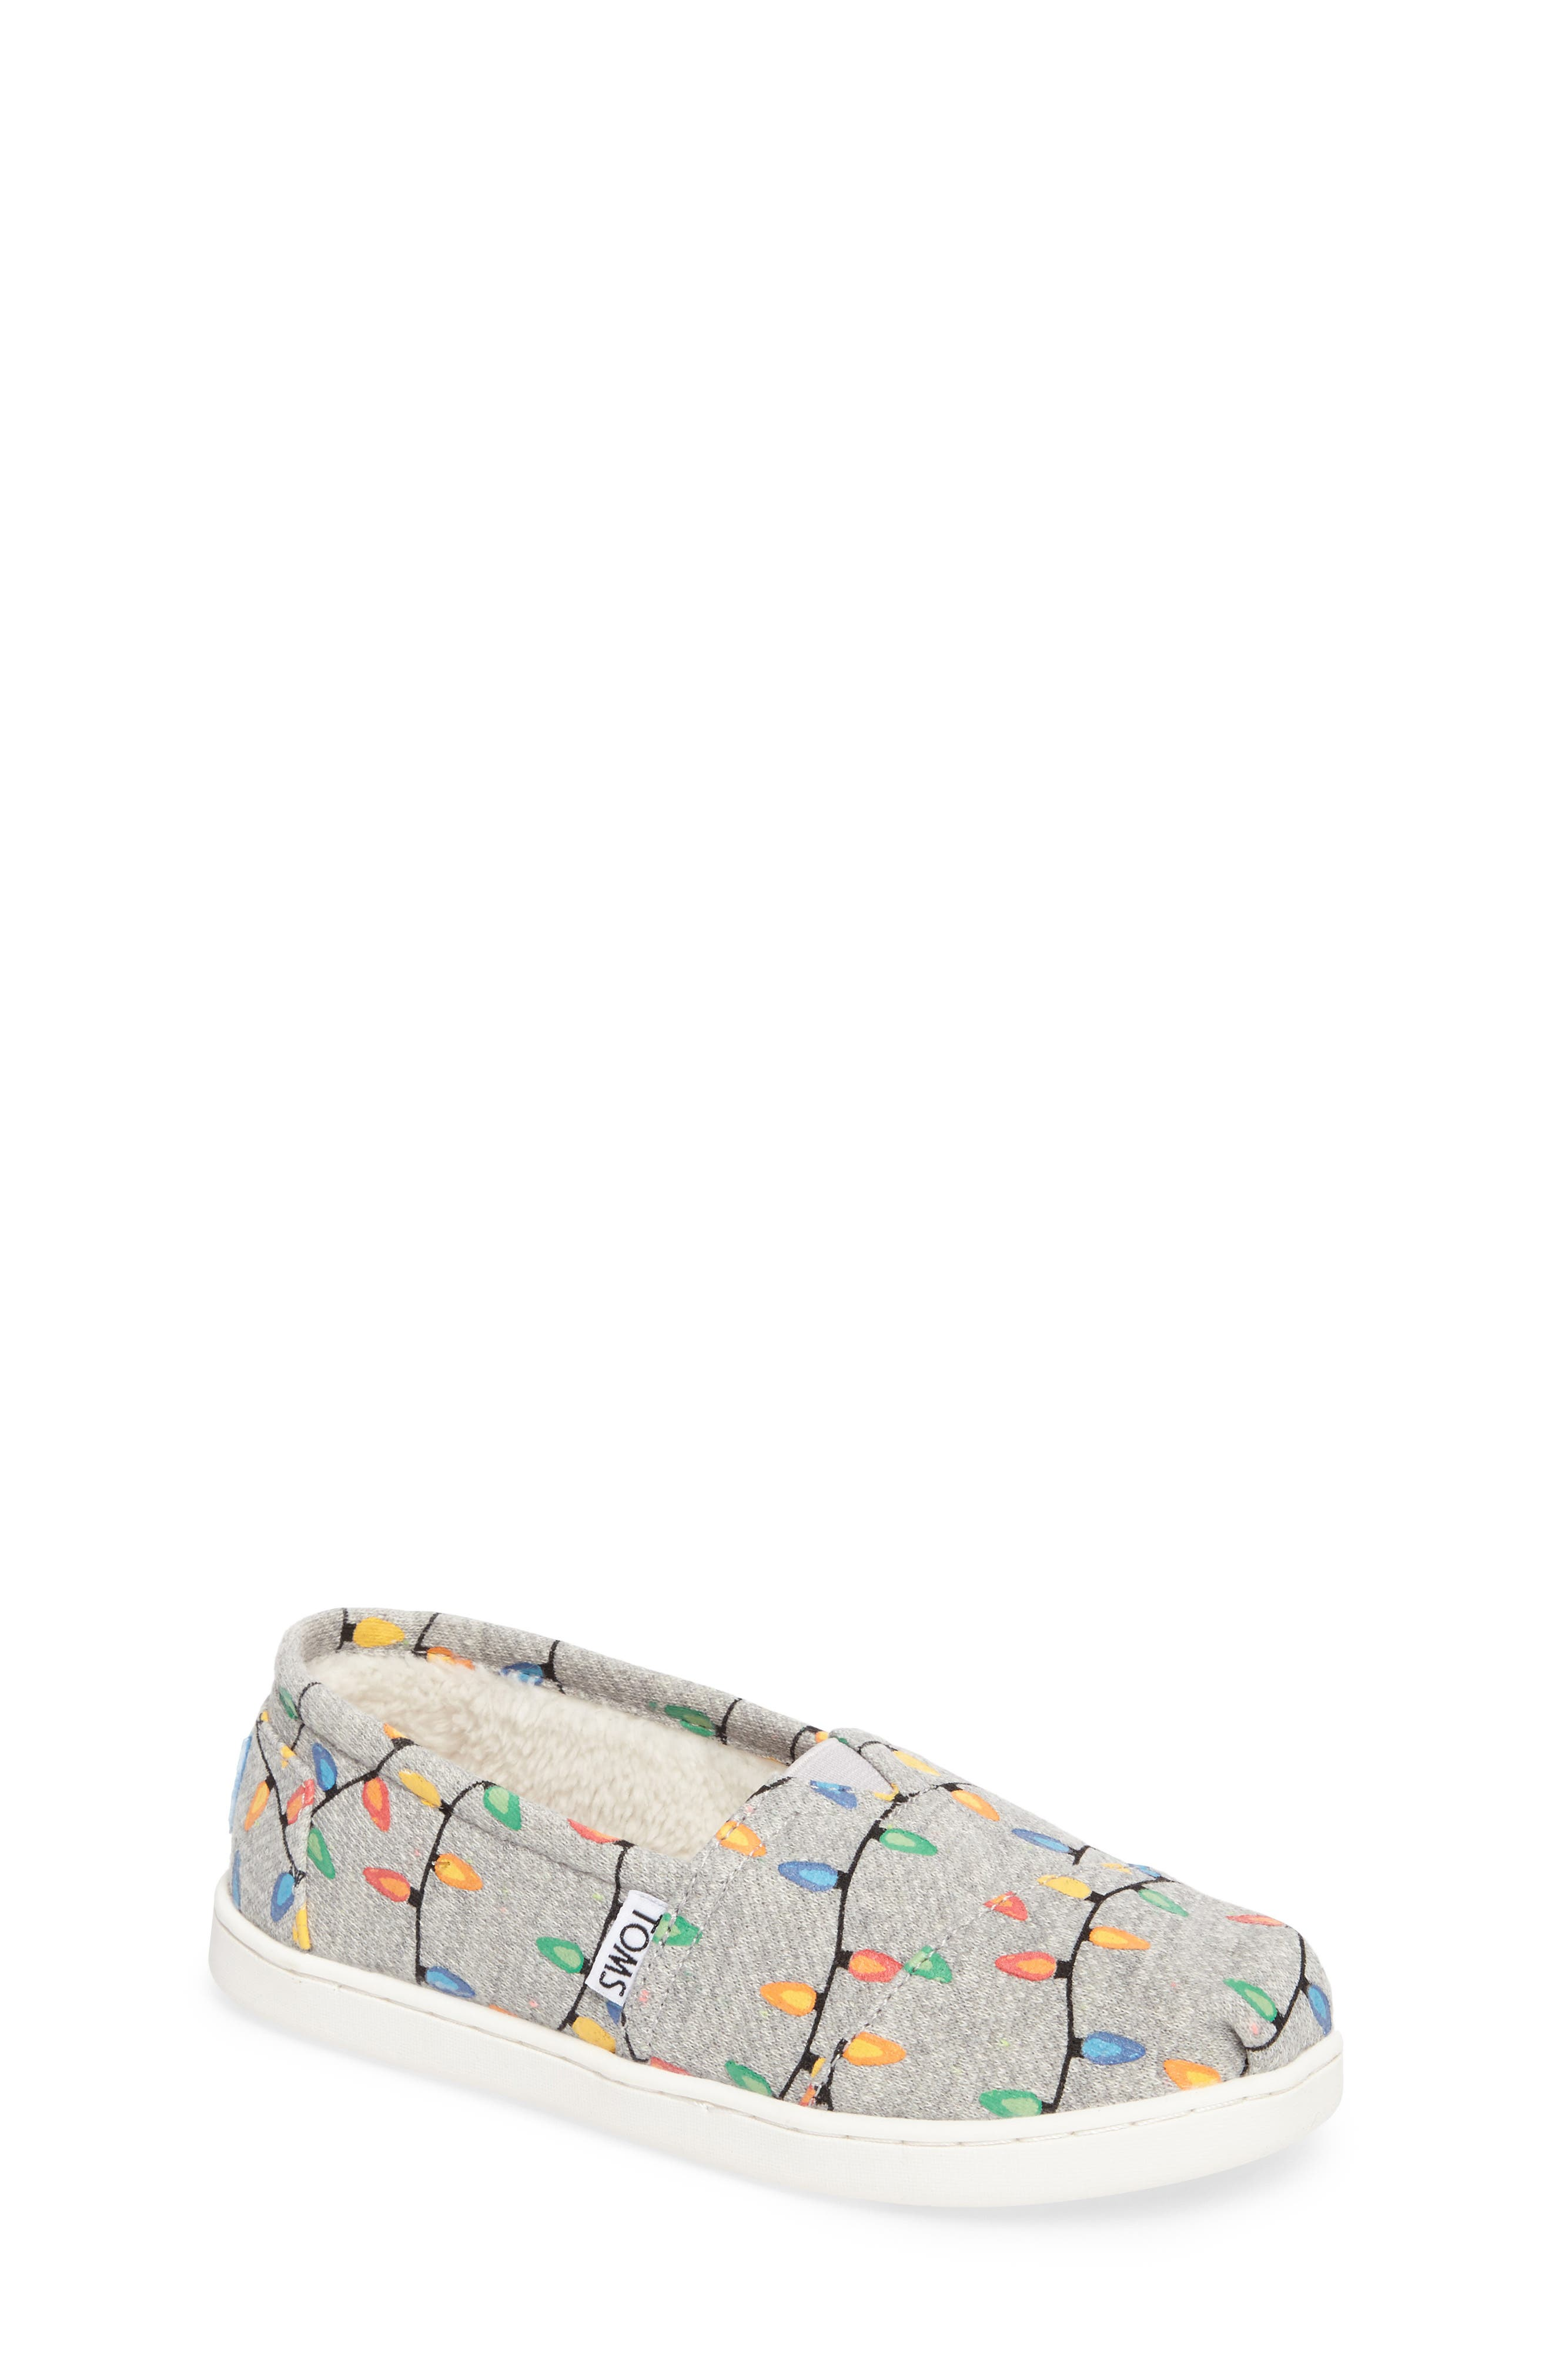 TOMS Classic Glow in the Dark Christmas Lights Slip-On (Toddler, Little Kid & Big Kid)